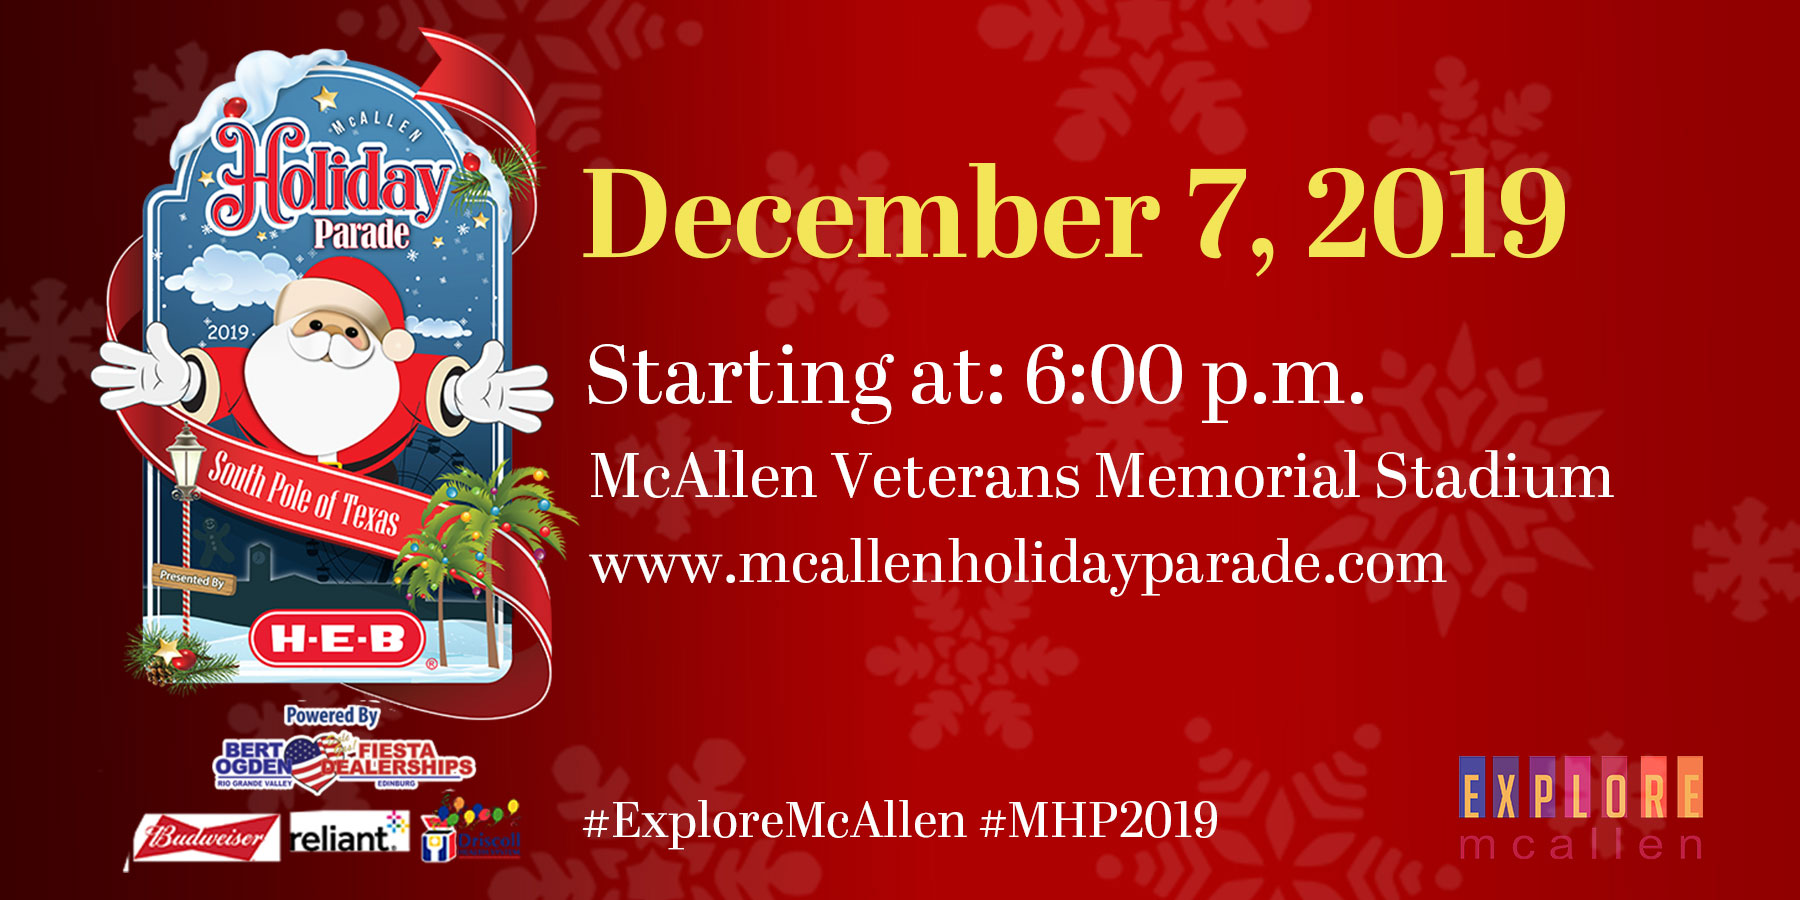 Mcallen Christmas Parade 2020 Route Annual McAllen Holiday Parade | Explore McAllen